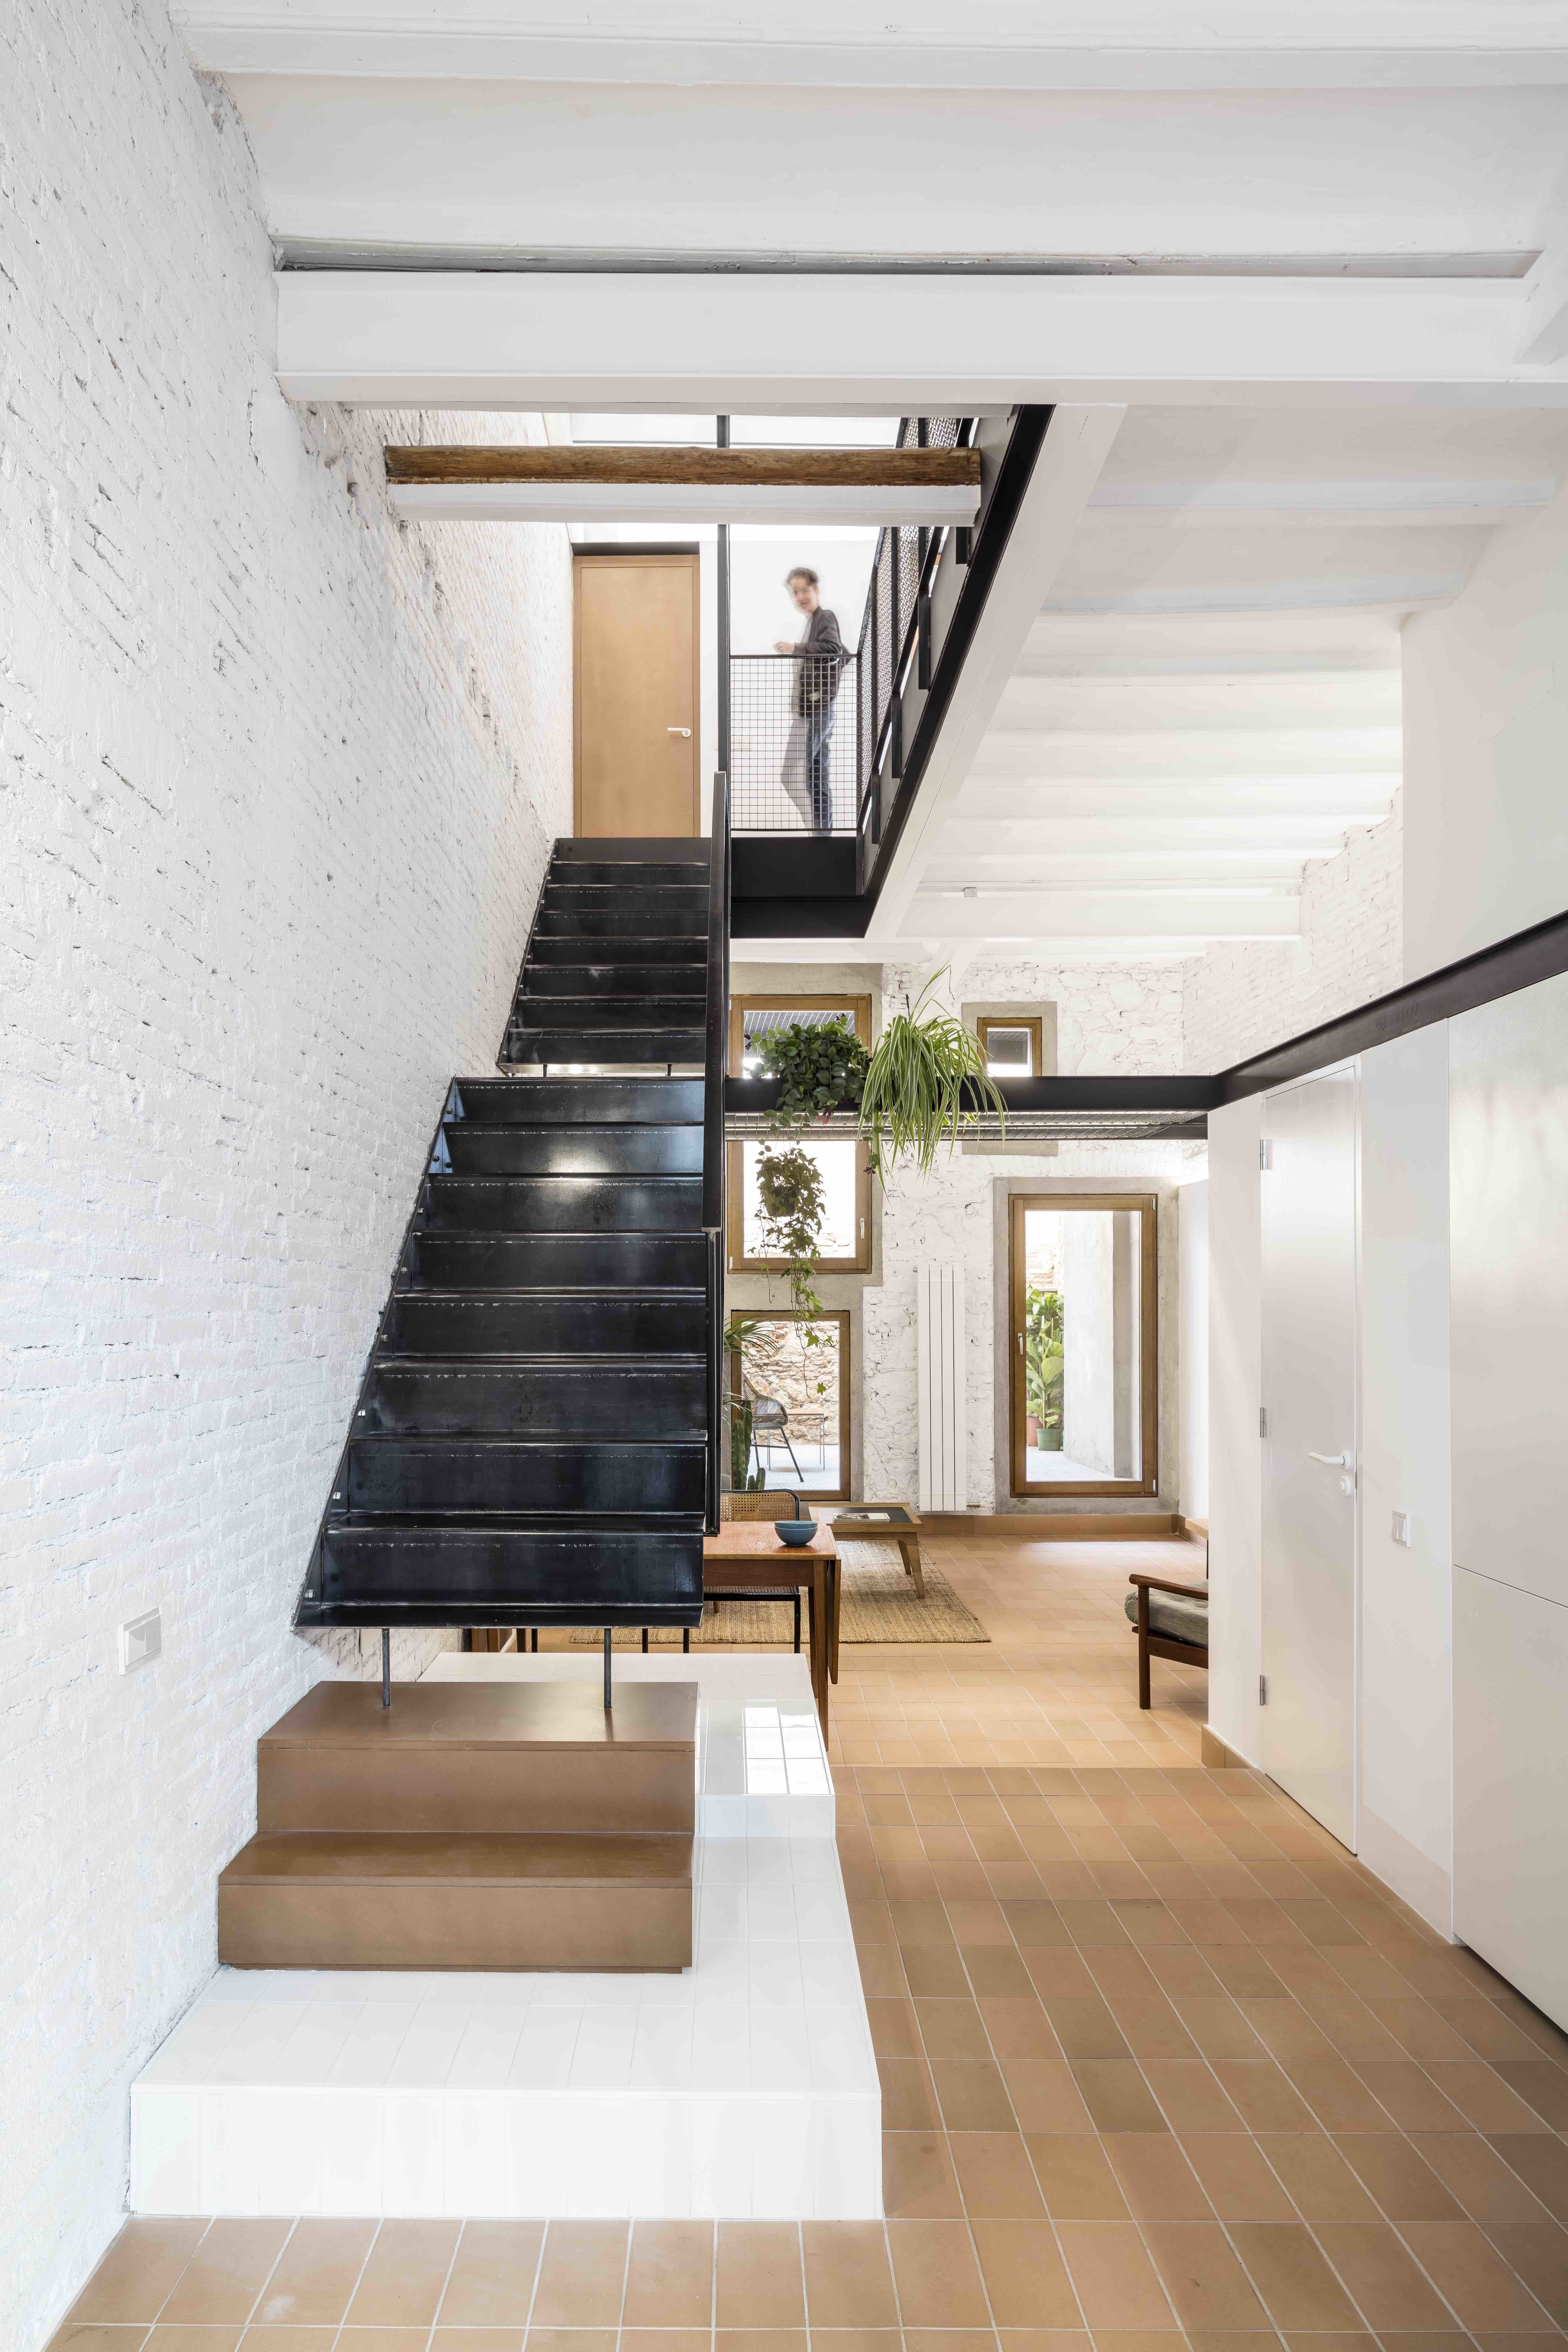 Best Photo 3 Of 13 In This Double Height Apartment In Barcelona 640 x 480